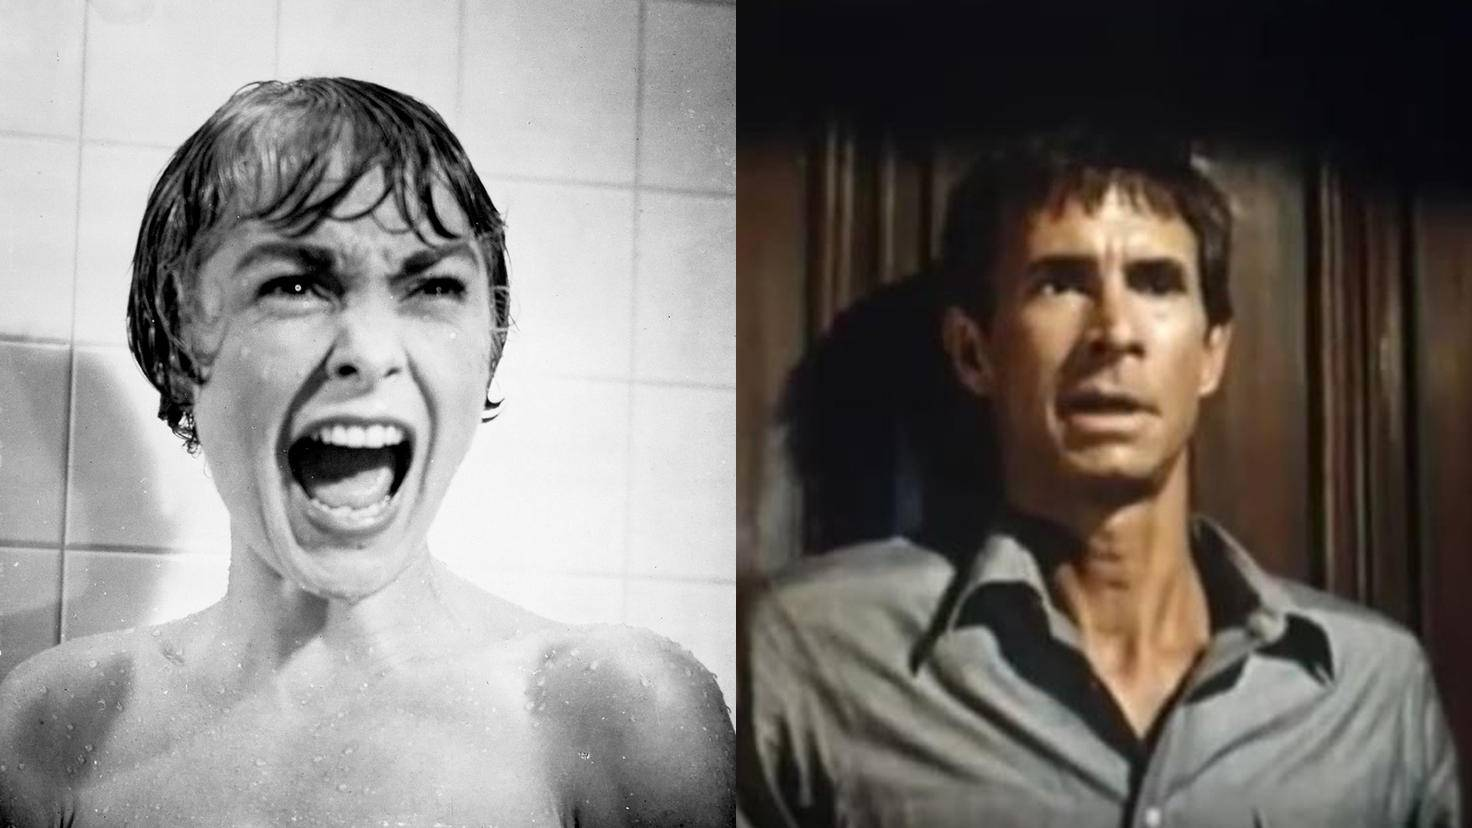 Psycho-1960-picture alliance-ASIAN NEWS NETWORK25965781-Psycho 2-Youtube-Movieclips Classic Trailers